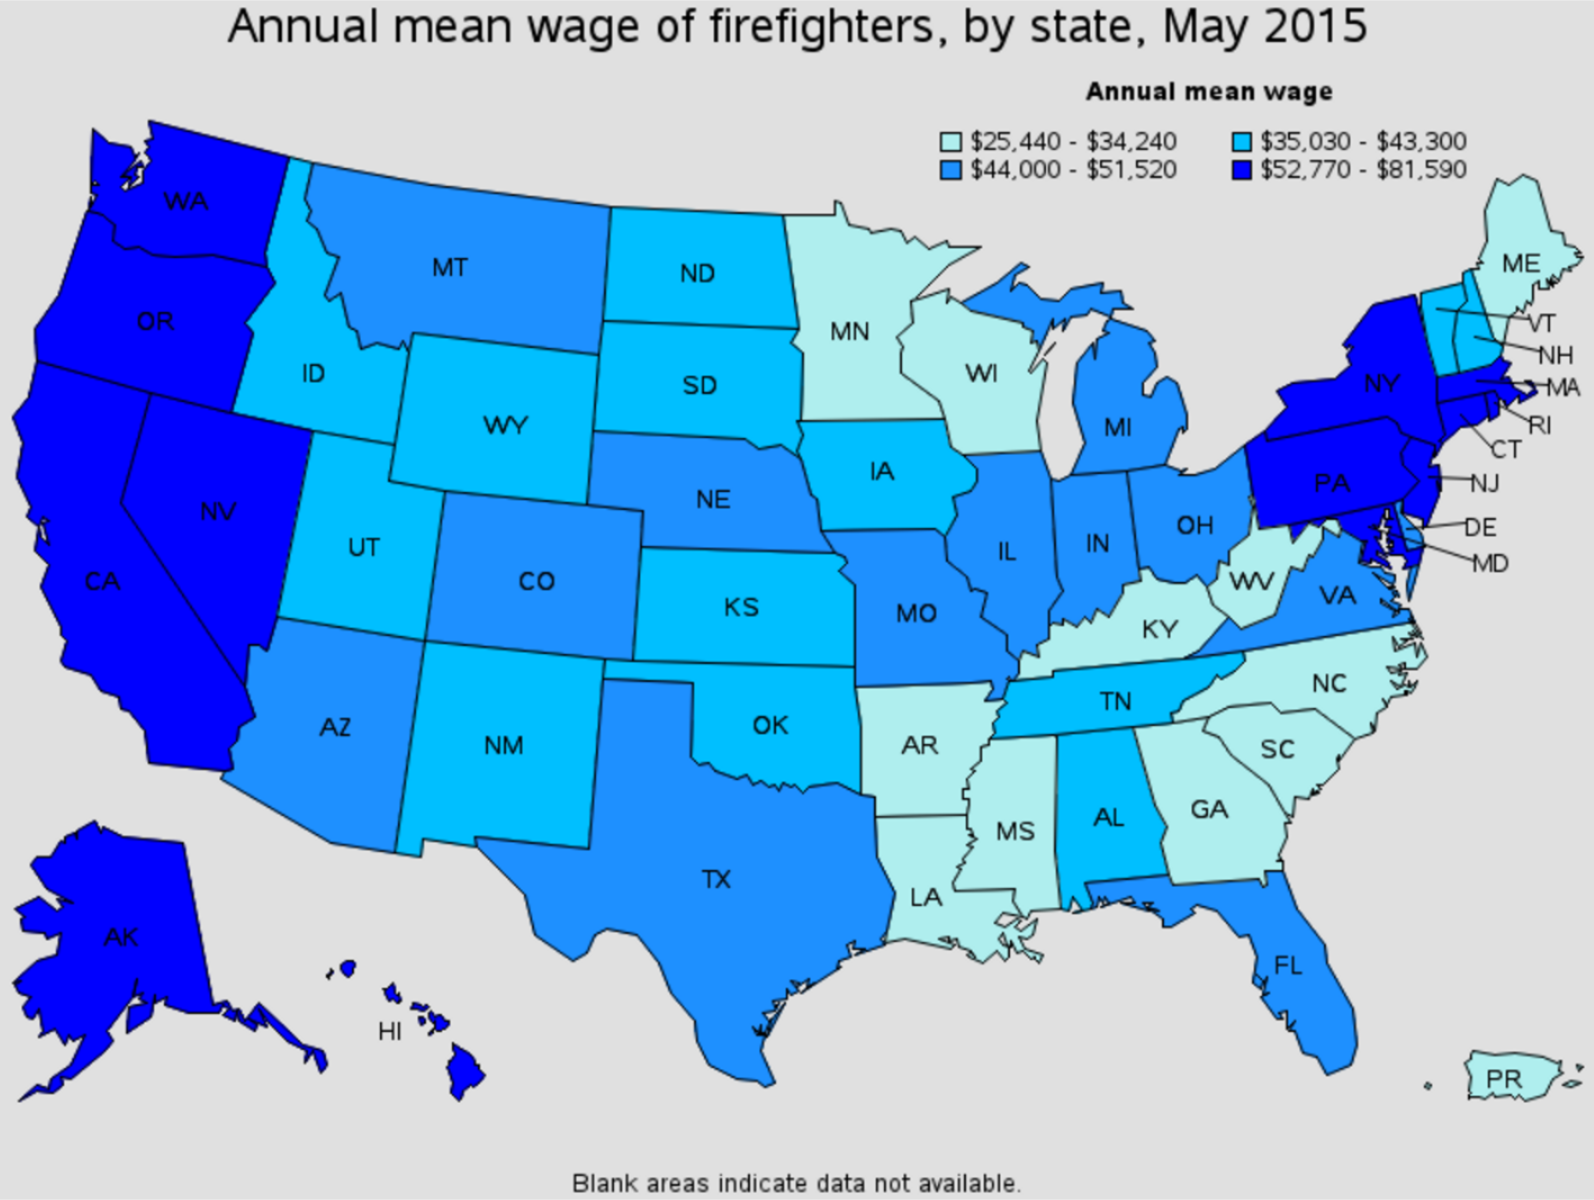 firefighter average salary by state White Marsh Maryland